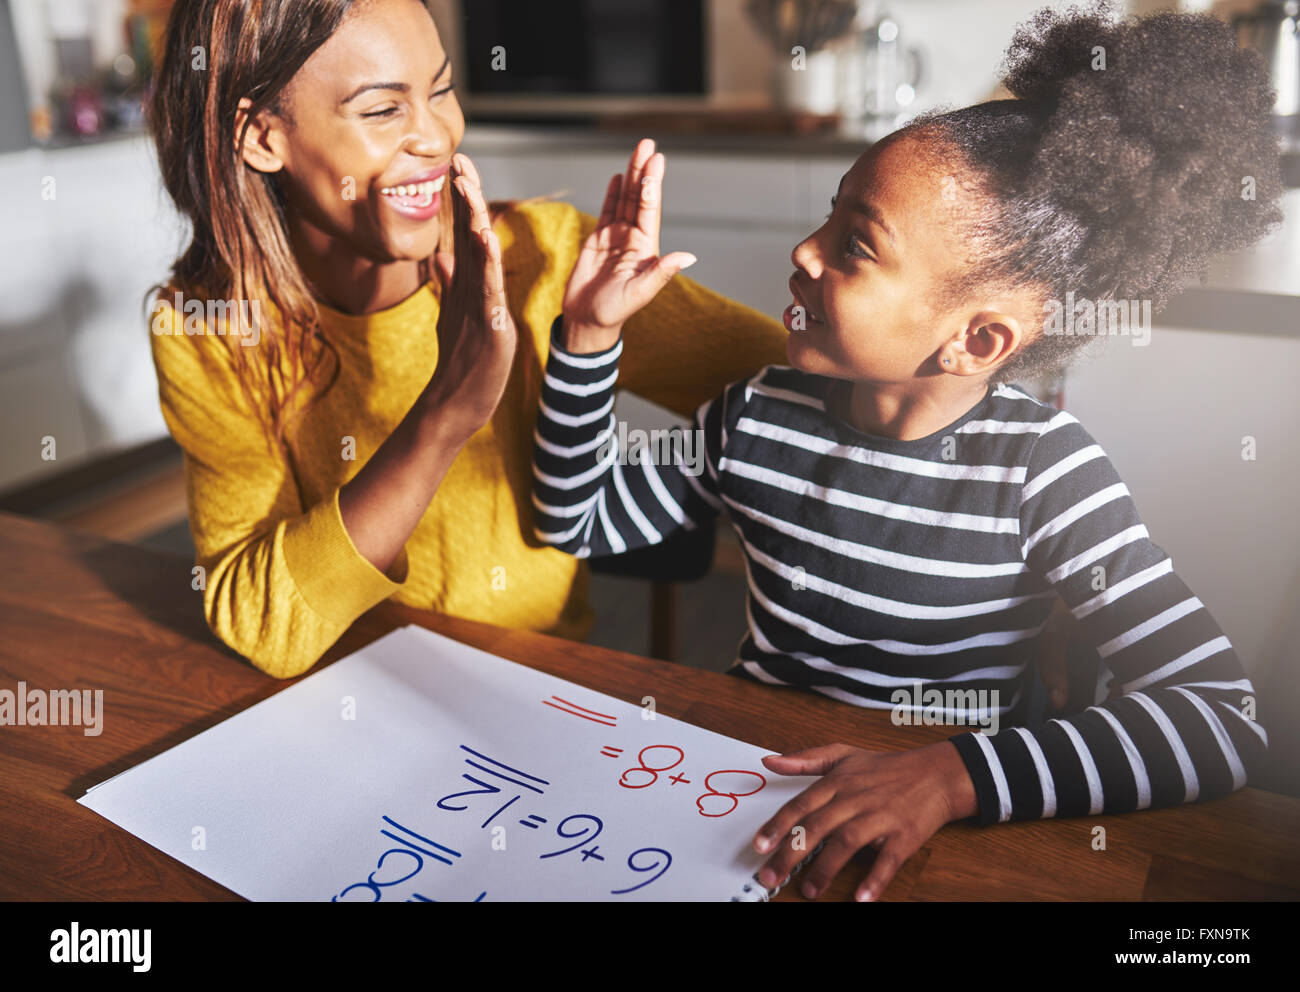 Learning to calculate, high five success, black mother and child - Stock Image